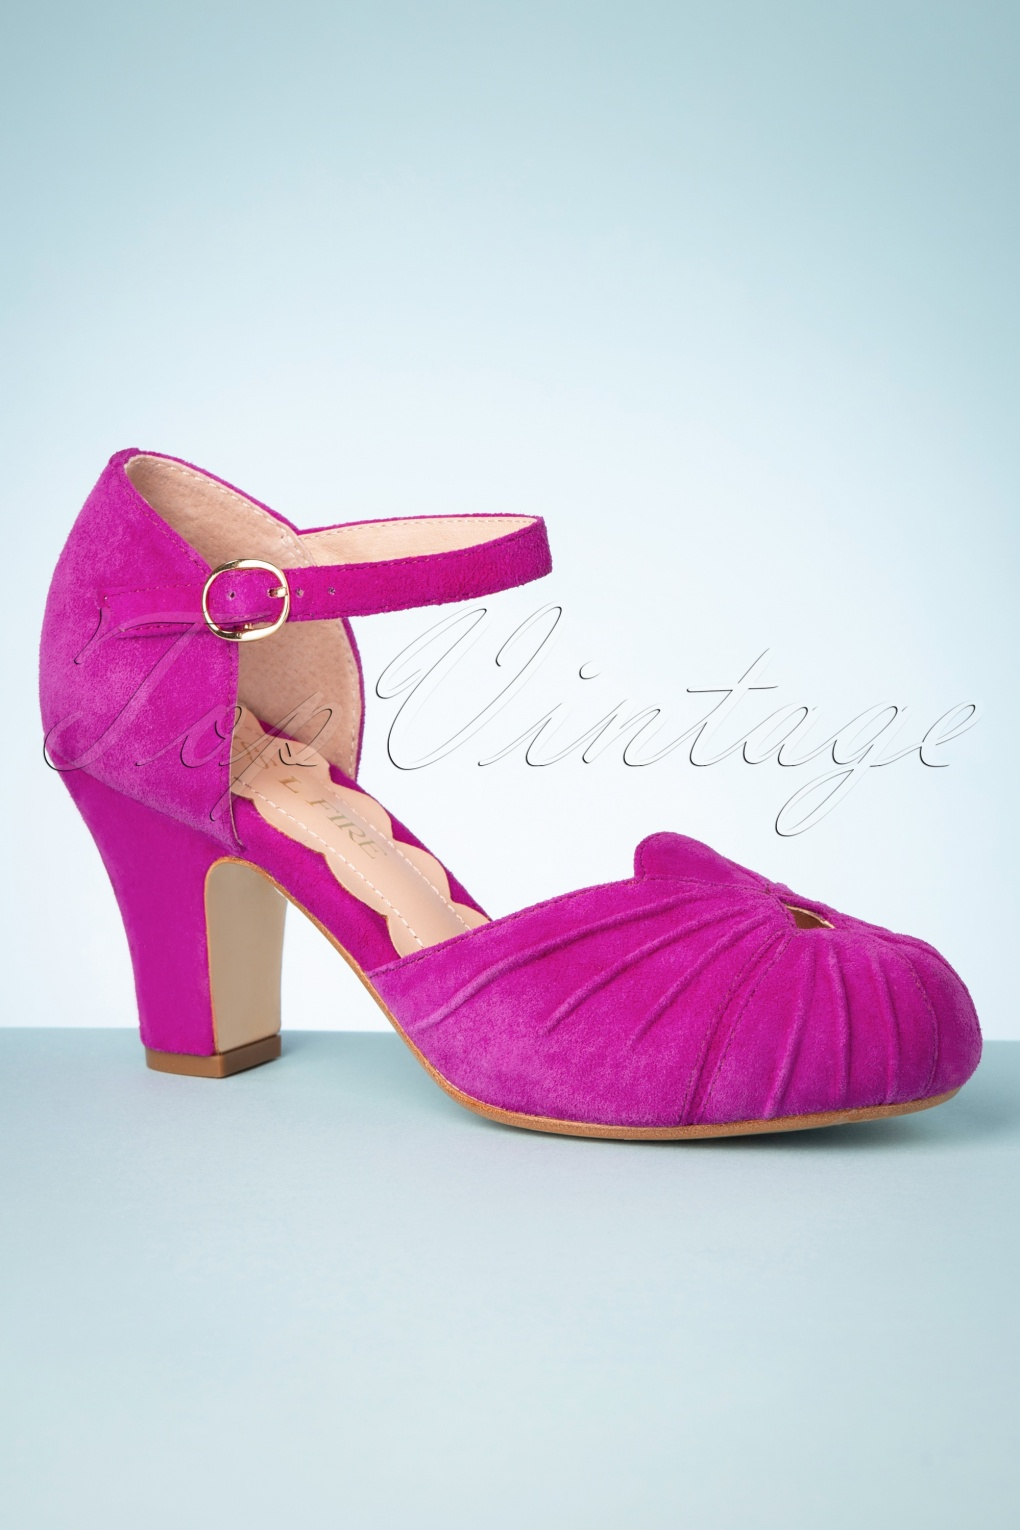 Pin Up Shoes- Heels, Pumps & Flats 40s Amber Mary Jane Pumps in Magenta £126.77 AT vintagedancer.com